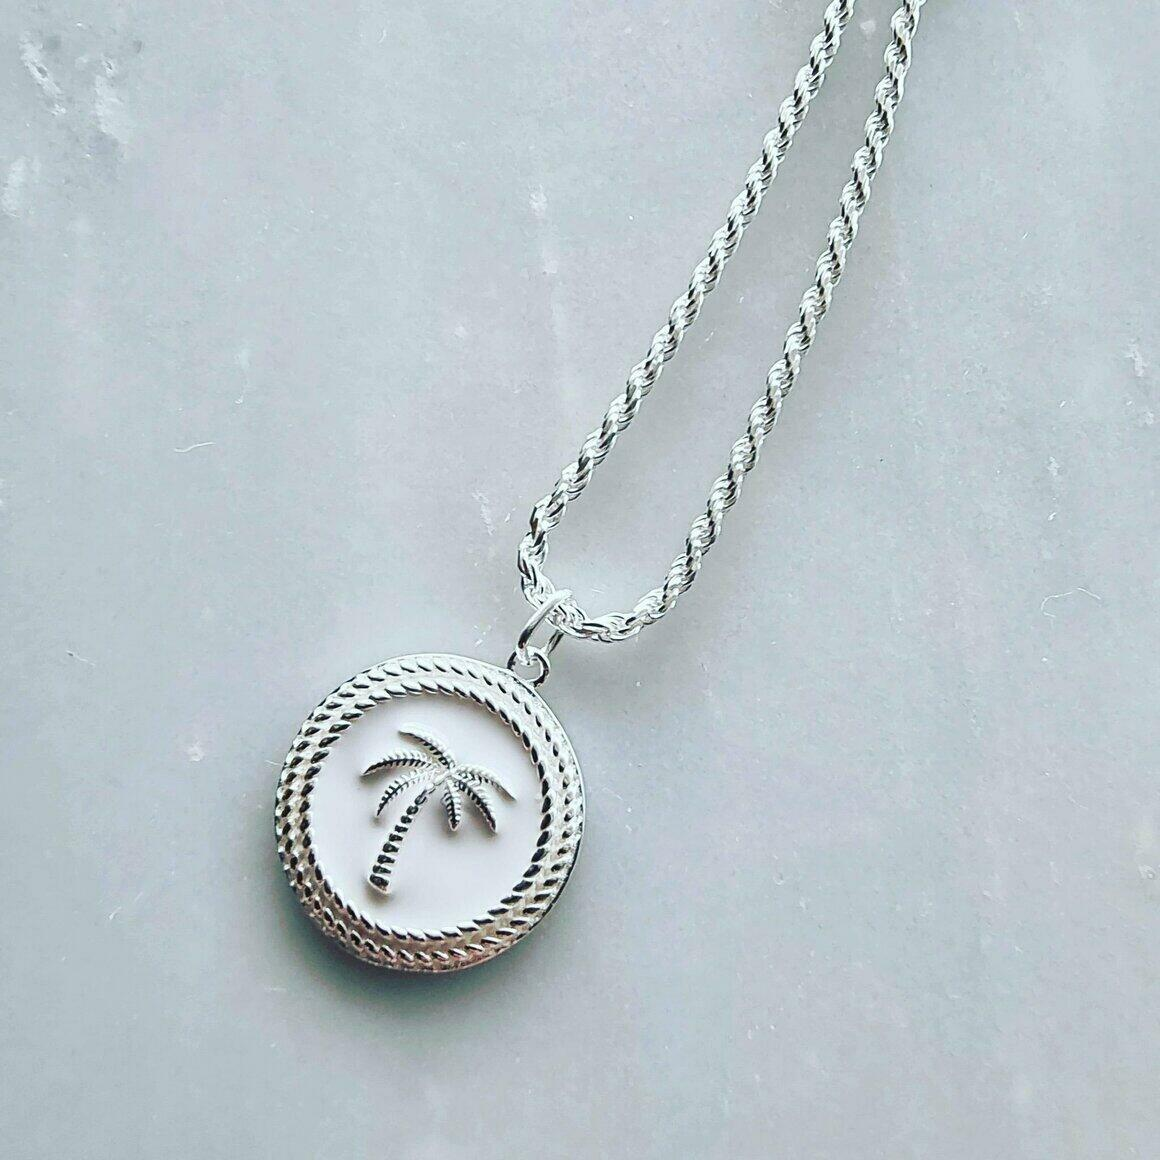 Club Tropicana Silver Plated Pendant with Rope Chain | Trada Marketplace